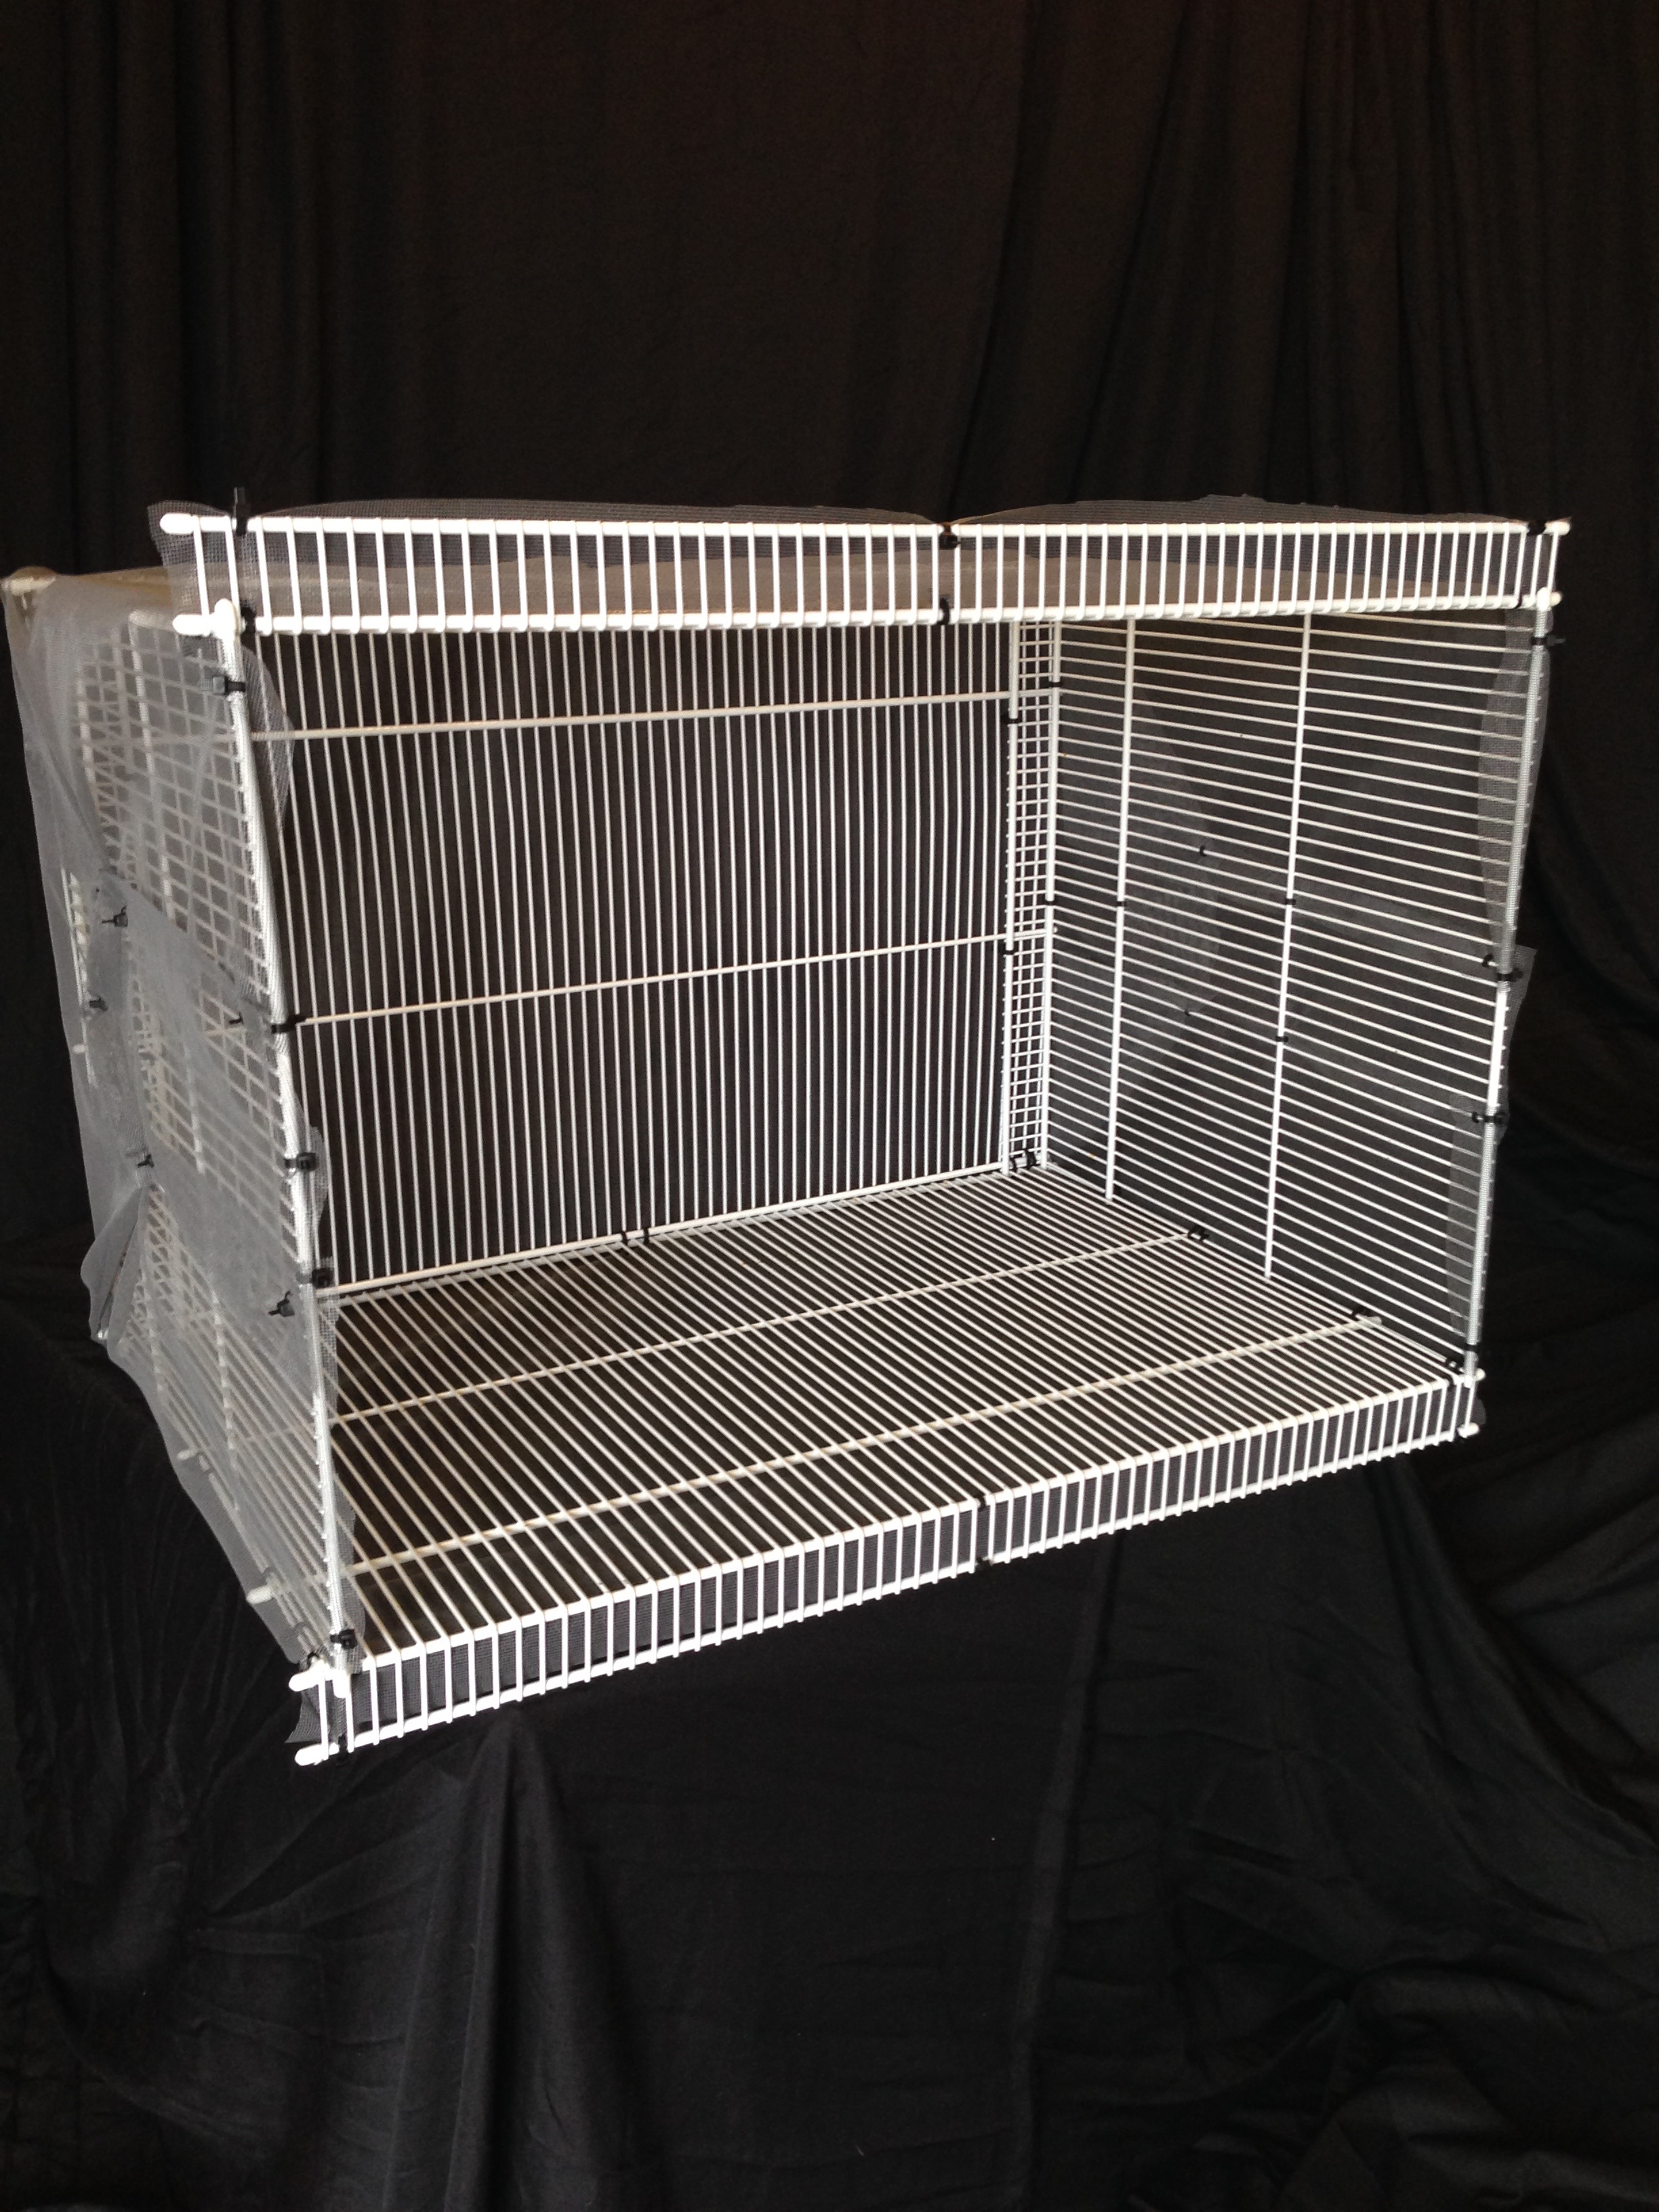 My catio is designed like a window a/c unit. The top and bottom lips hold the catio onto the window.